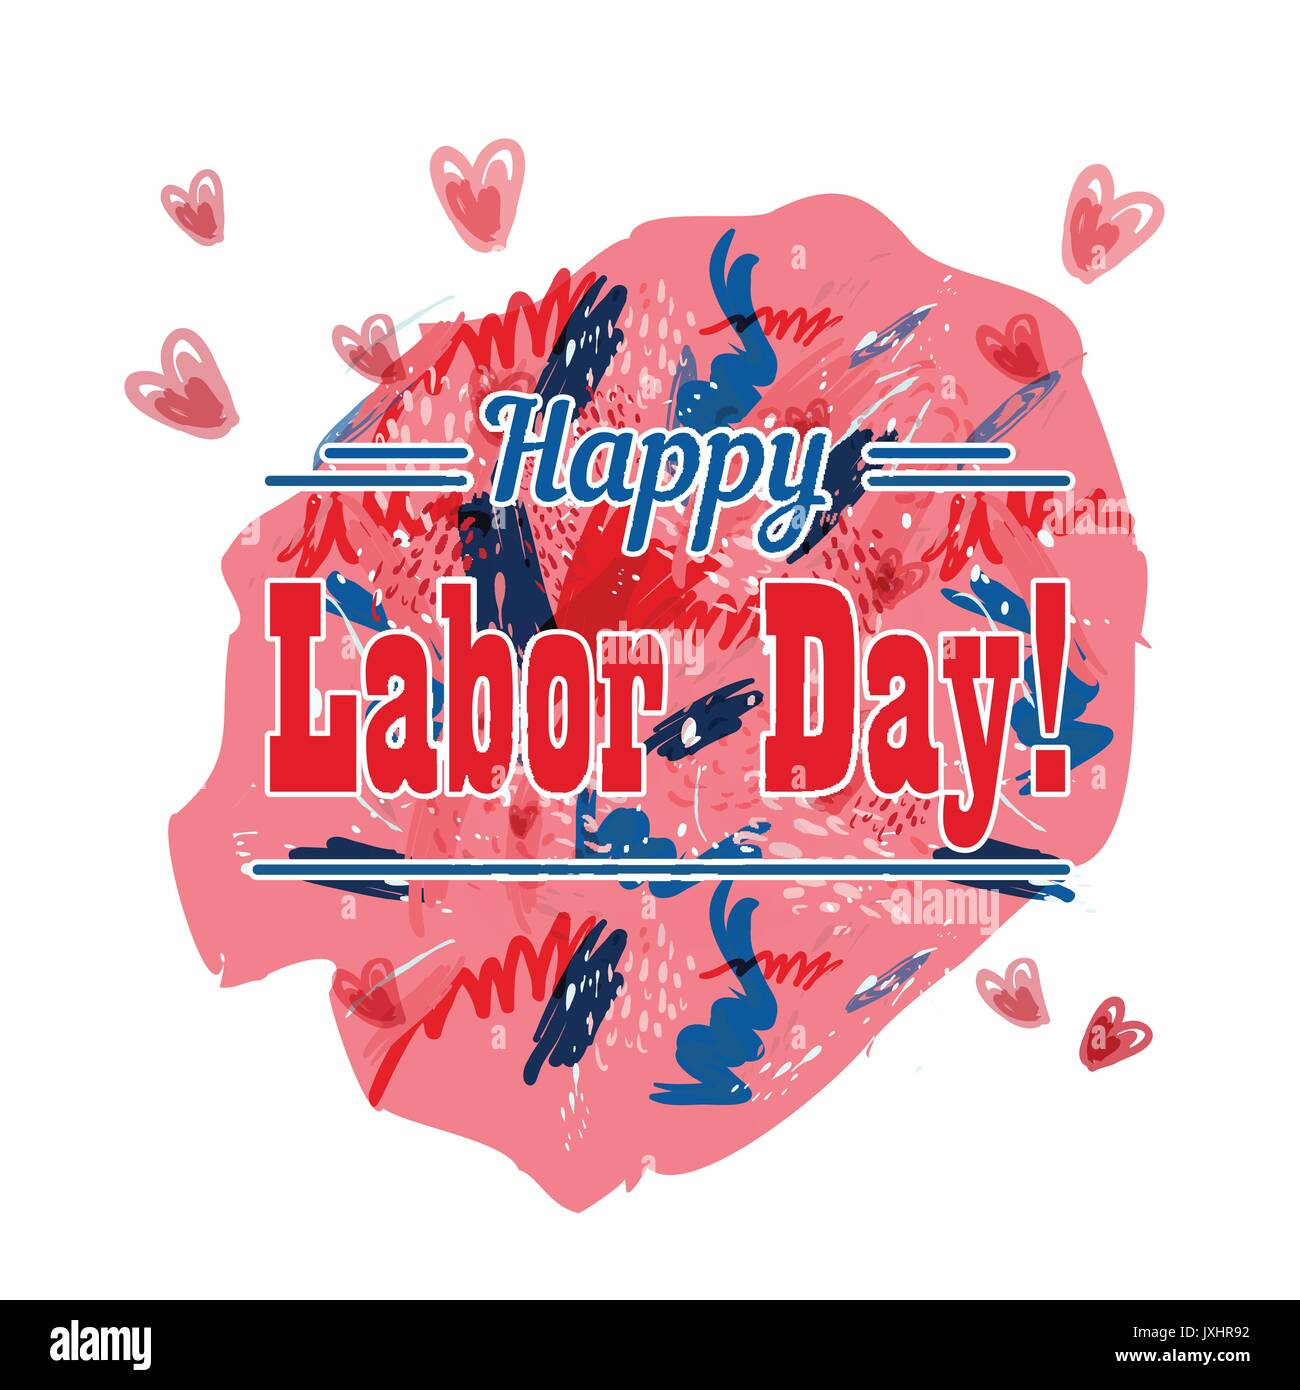 Holiday Greetings Illustration Labor Day Stock Vector Art